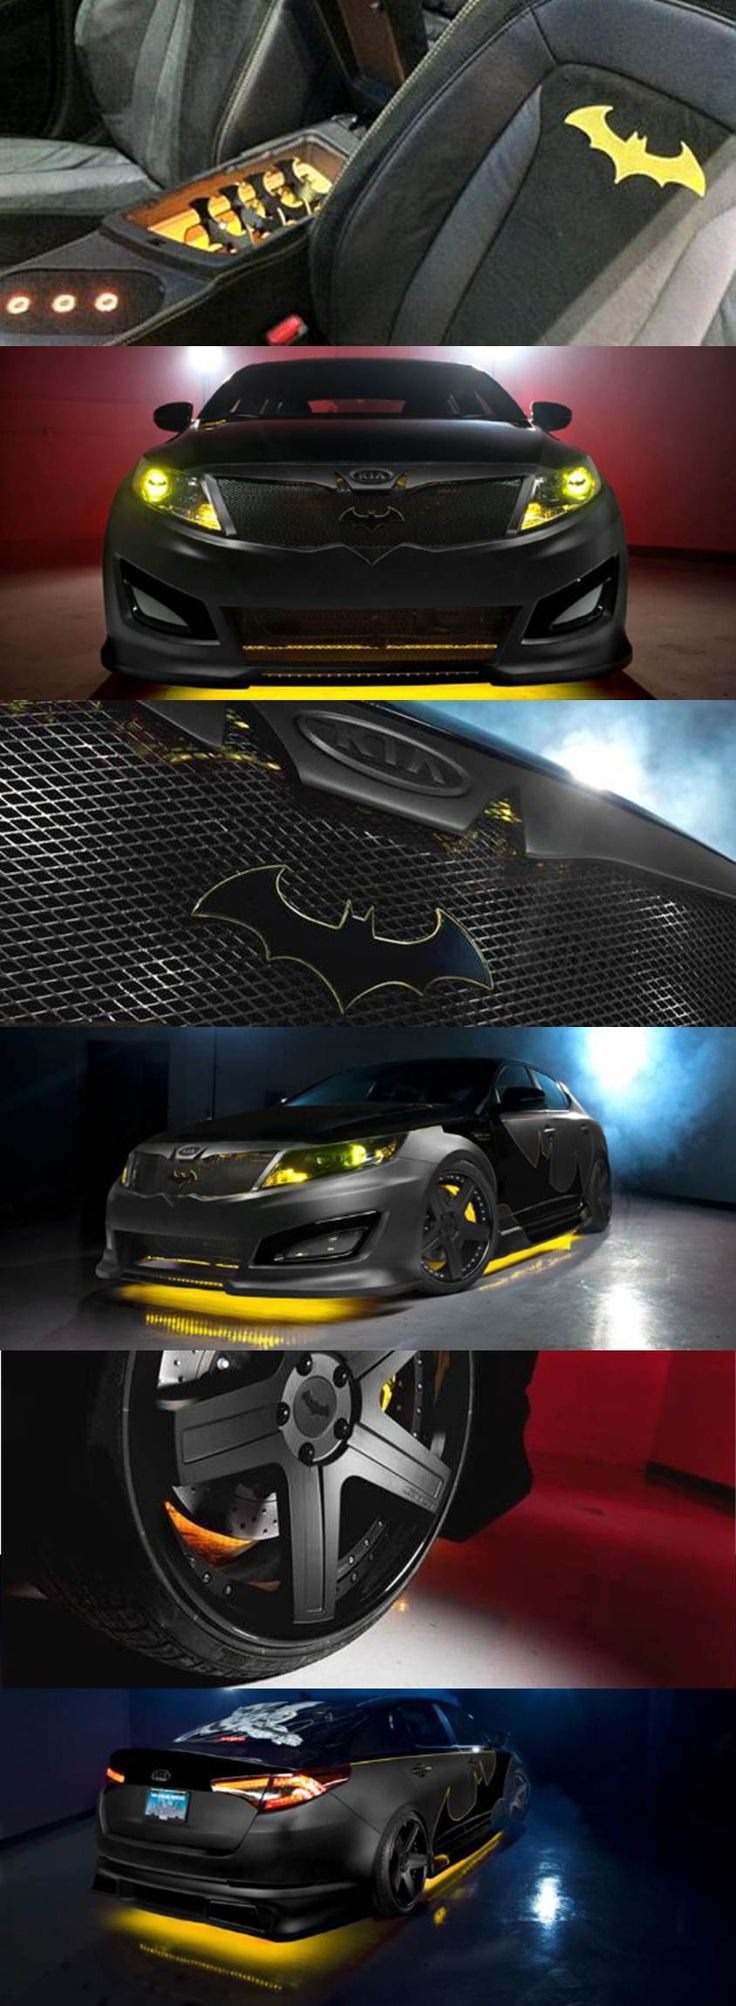 Batman-inspired Kia Optima ready to fight hunger in Africa. This is a badass looking car